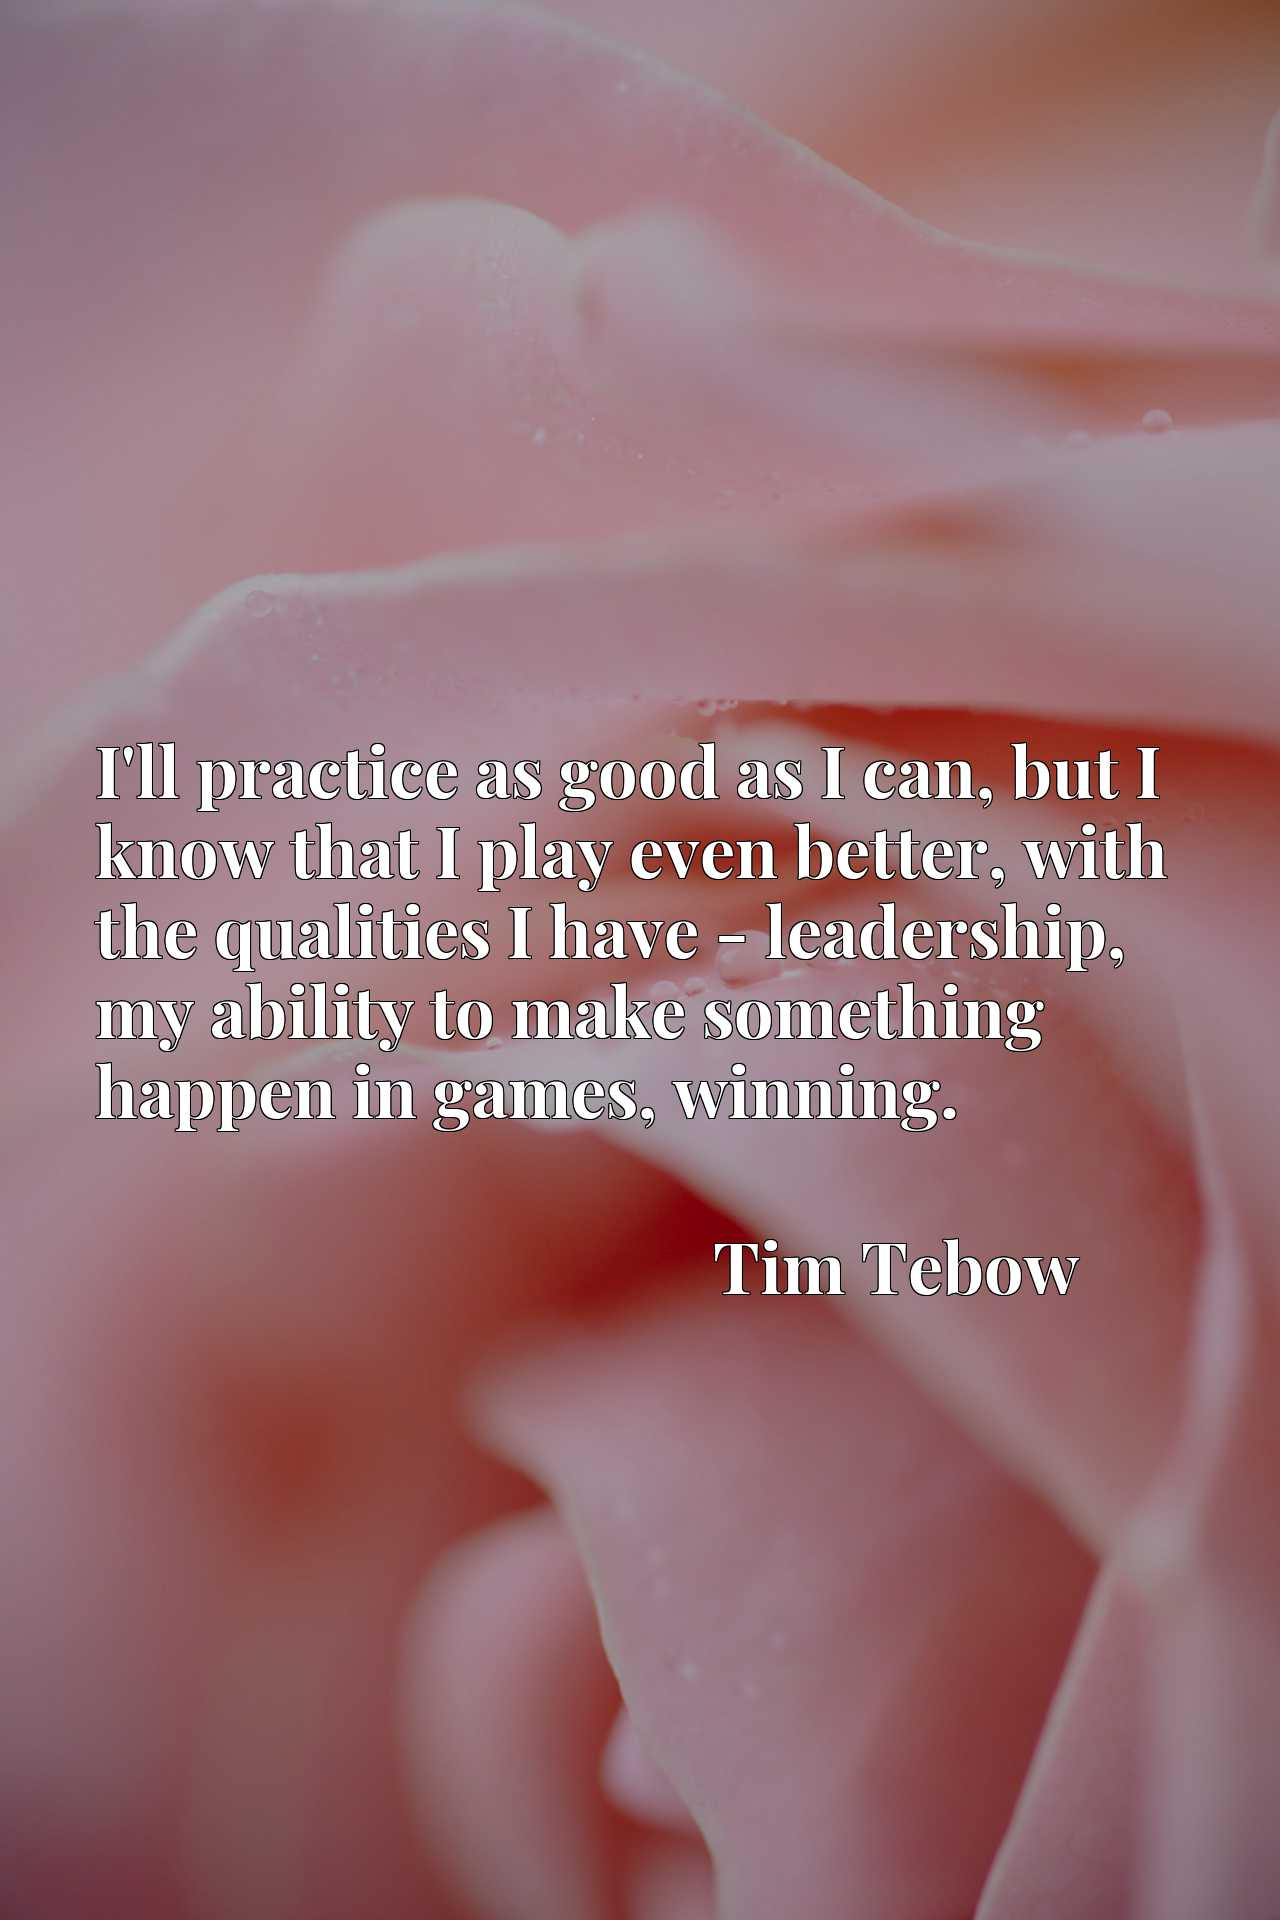 Quote Picture :I'll practice as good as I can, but I know that I play even better, with the qualities I have - leadership, my ability to make something happen in games, winning.